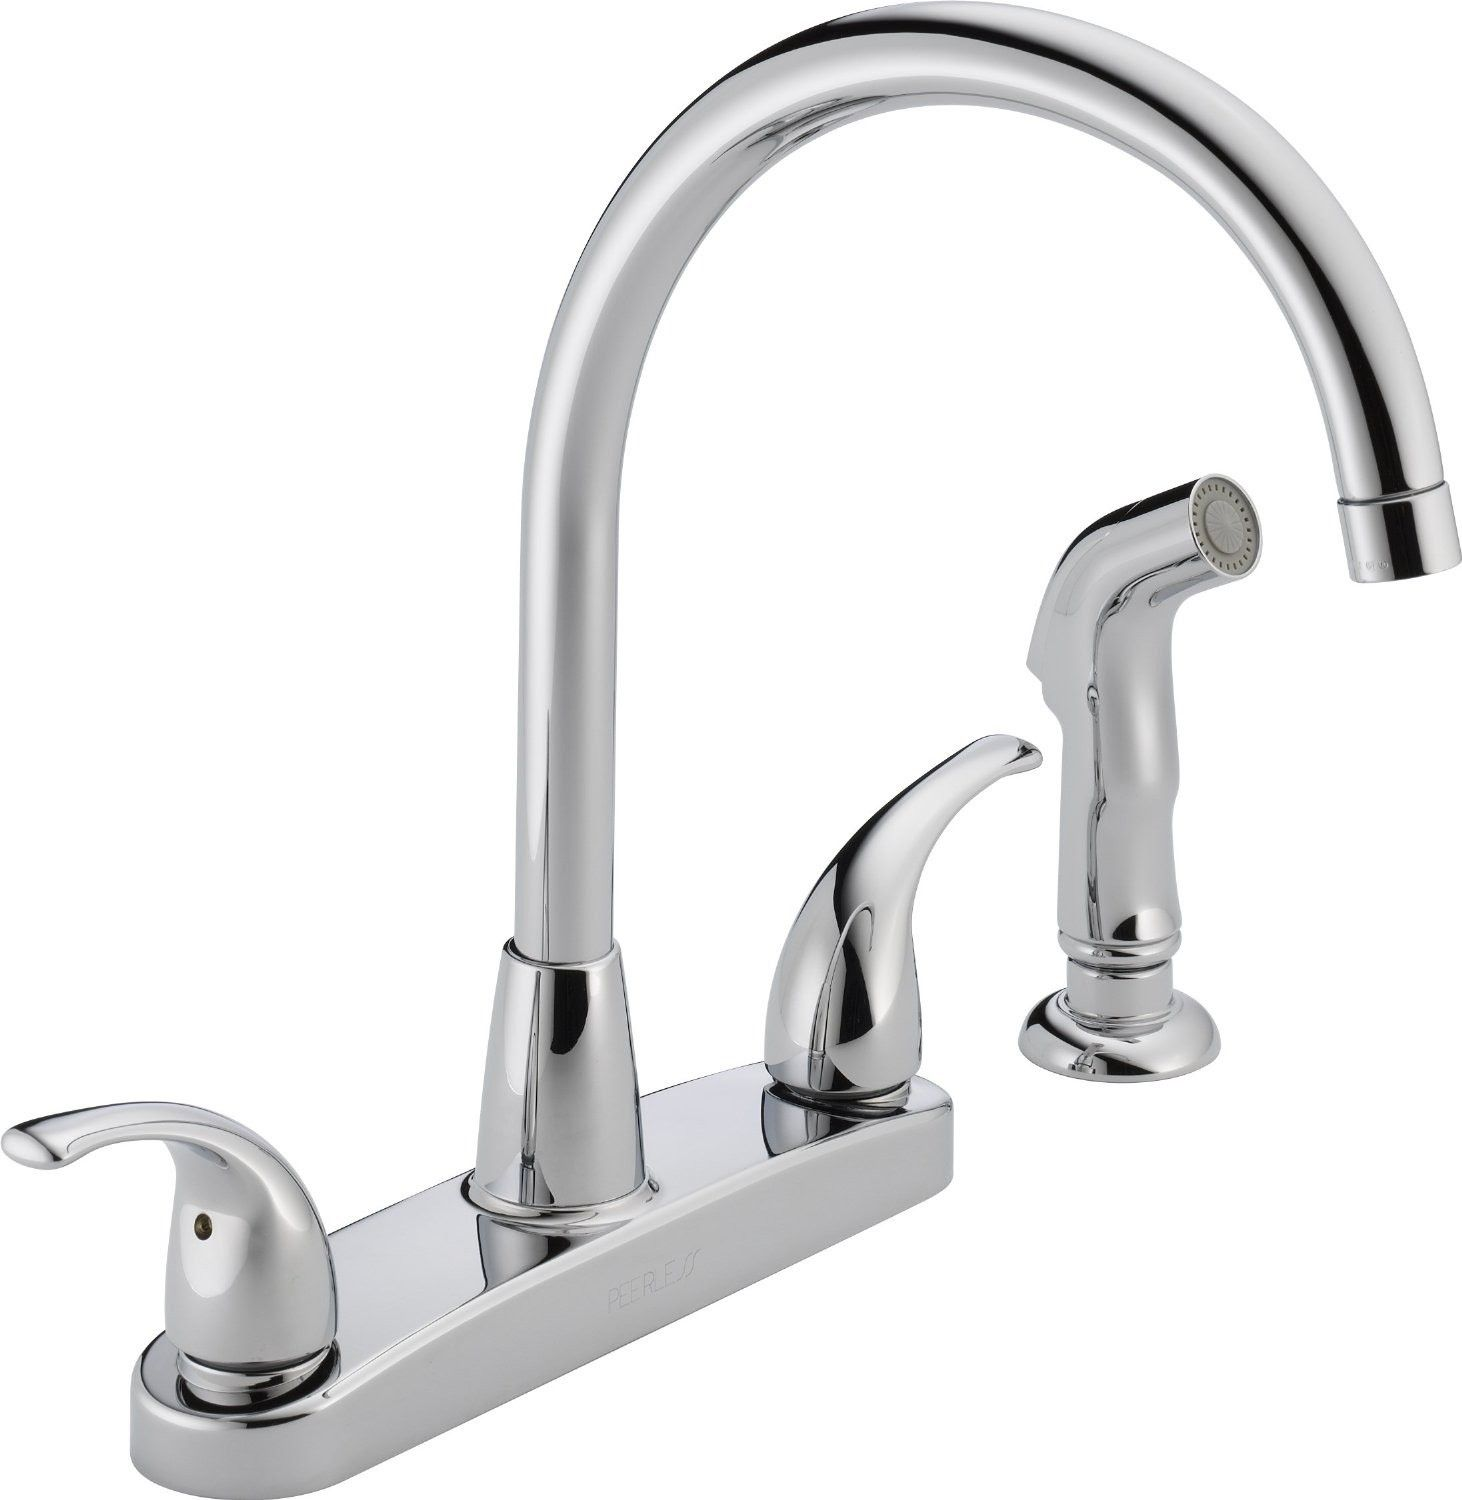 Elegant Price Pfister Faucet Parts Lowes | Faucet, Elegant and ...